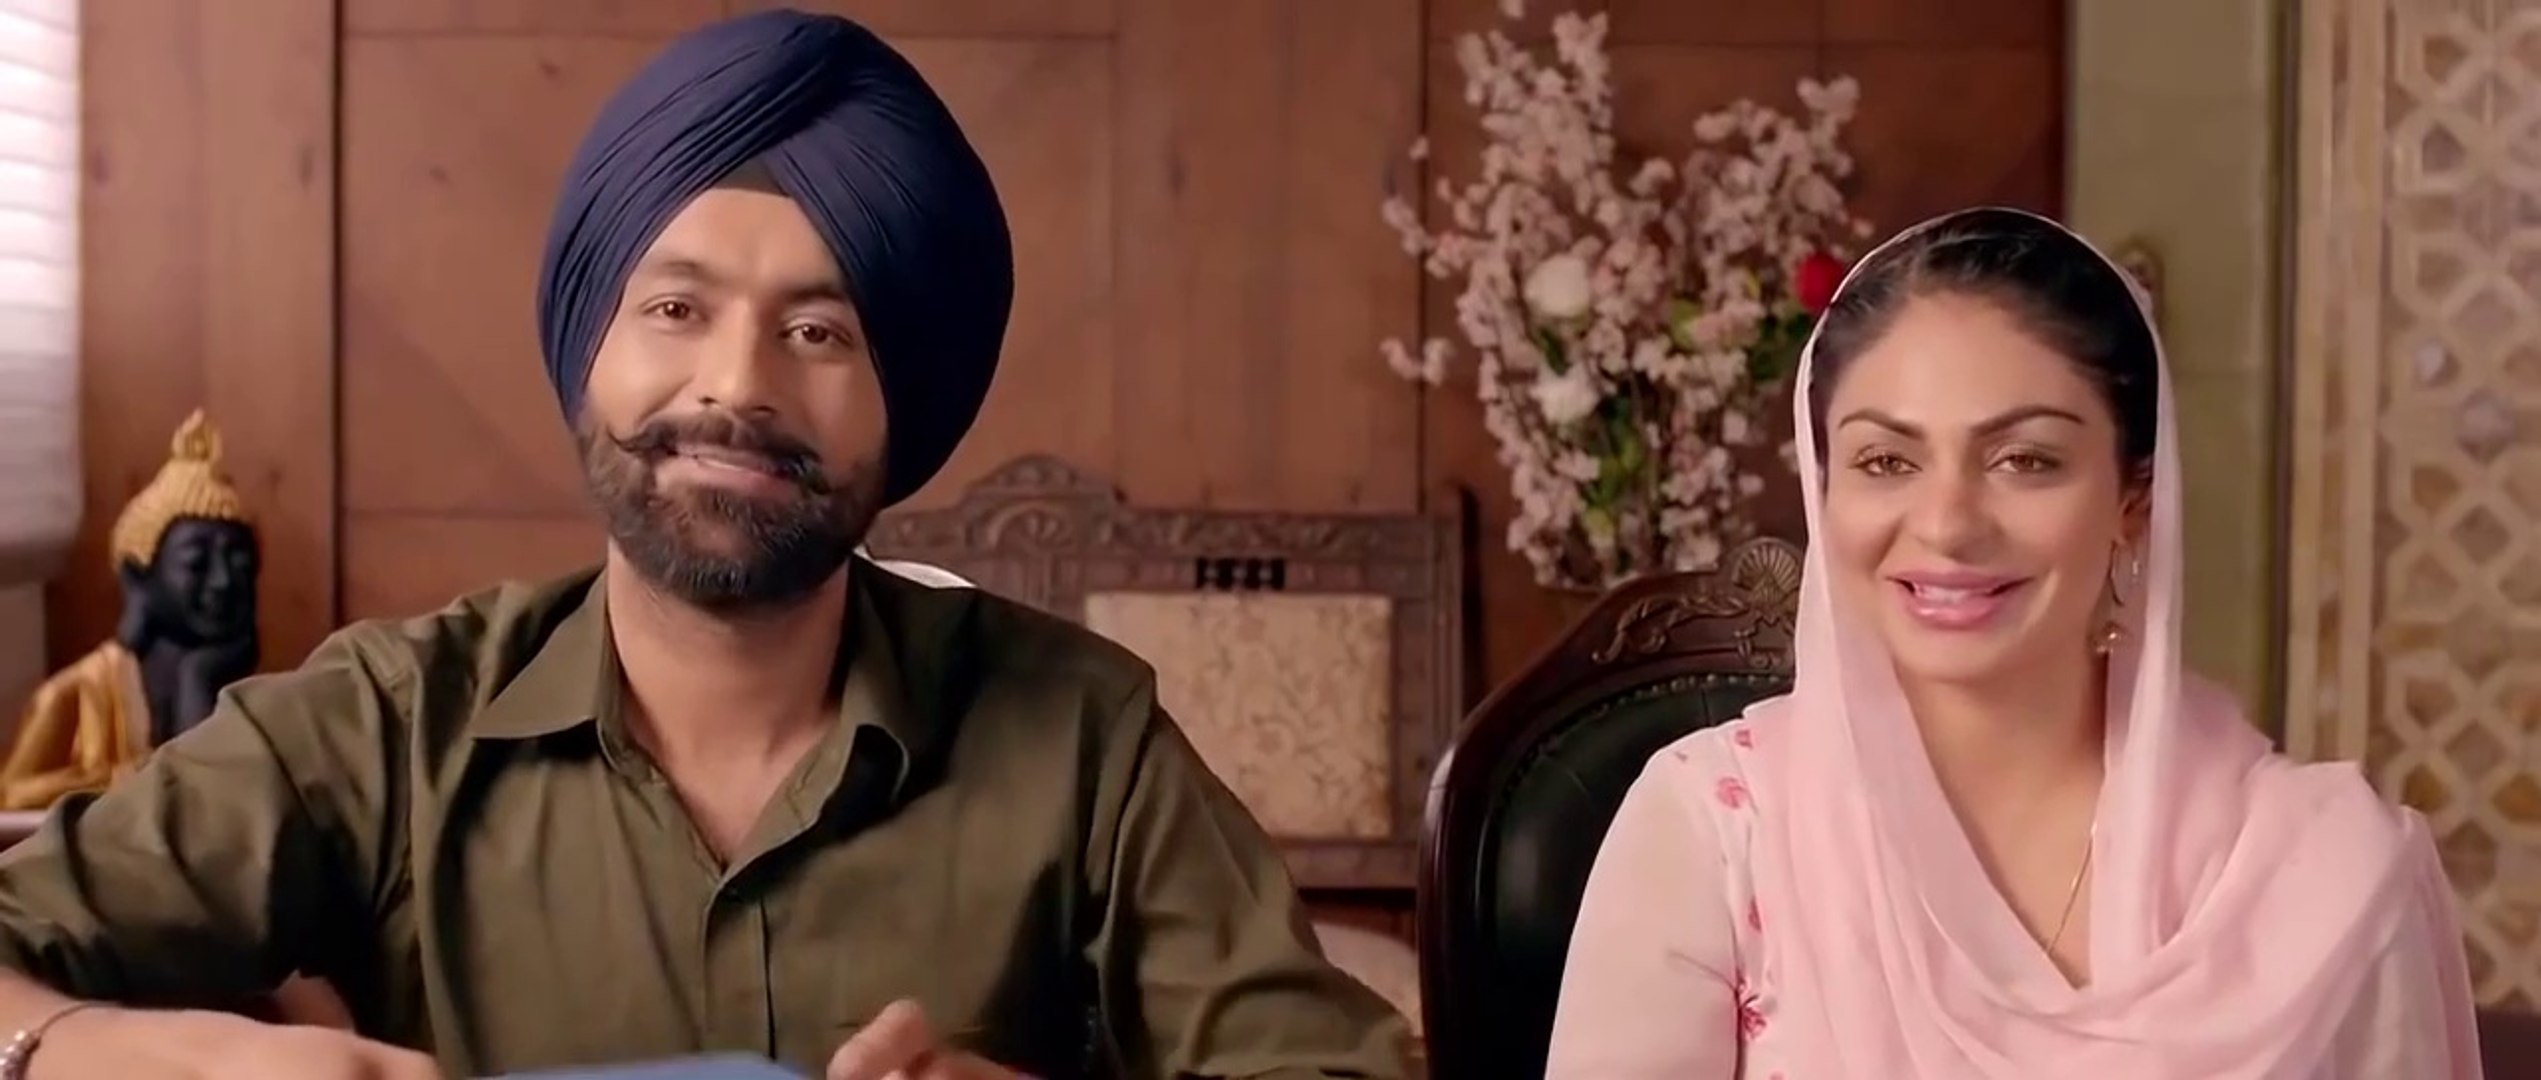 Uda Aida Tarsem Jassar Neeru Bajwa Part 2 Full Punjabi Movies Hd New Punjabi Movies 2020 Full Movies Video Dailymotion